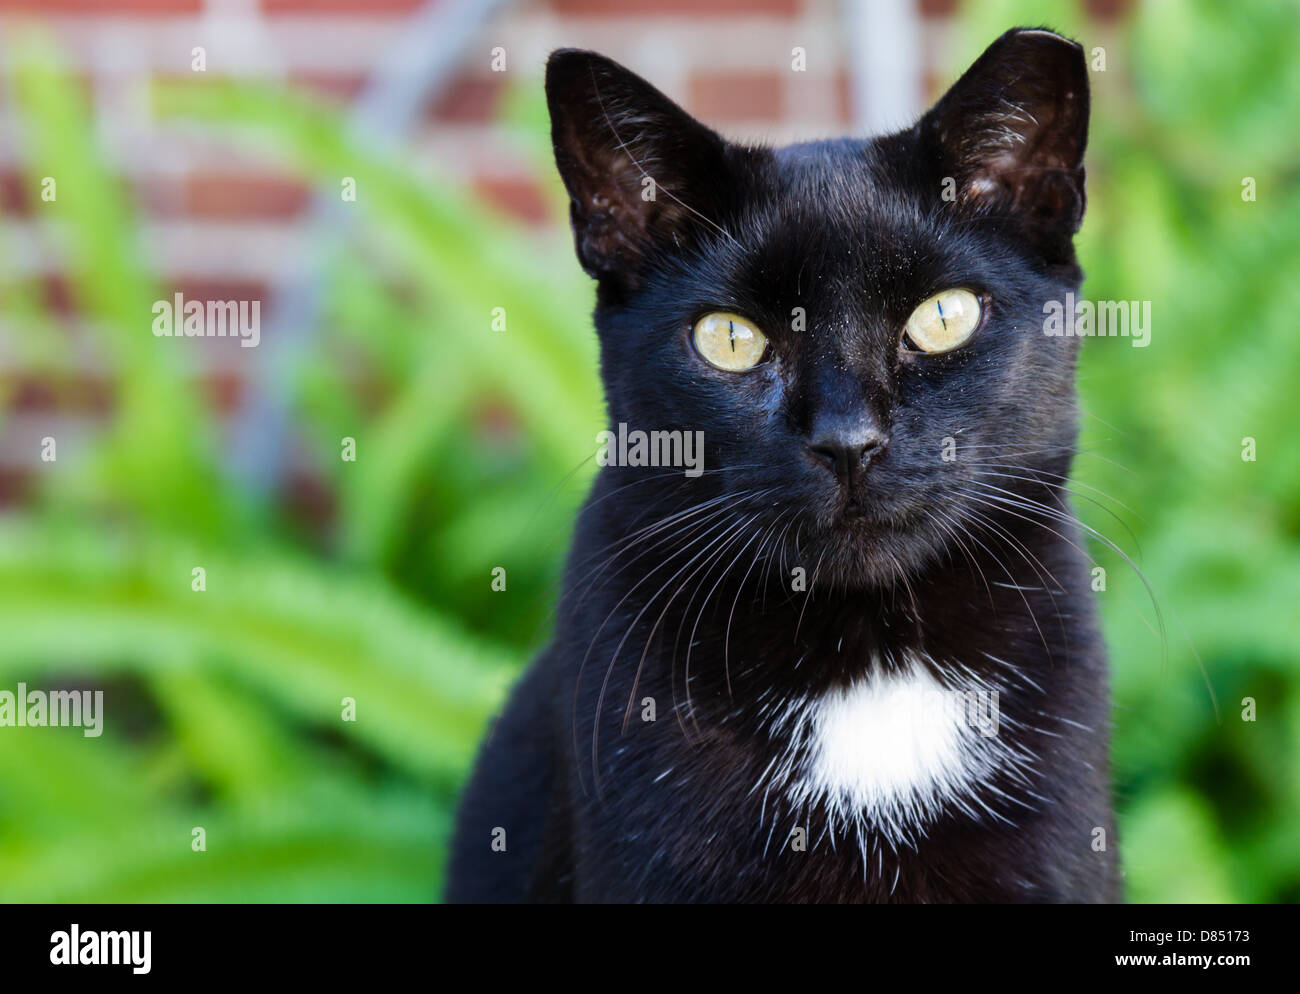 A black cat with a white spot and striking yellow eyes. - Stock Image